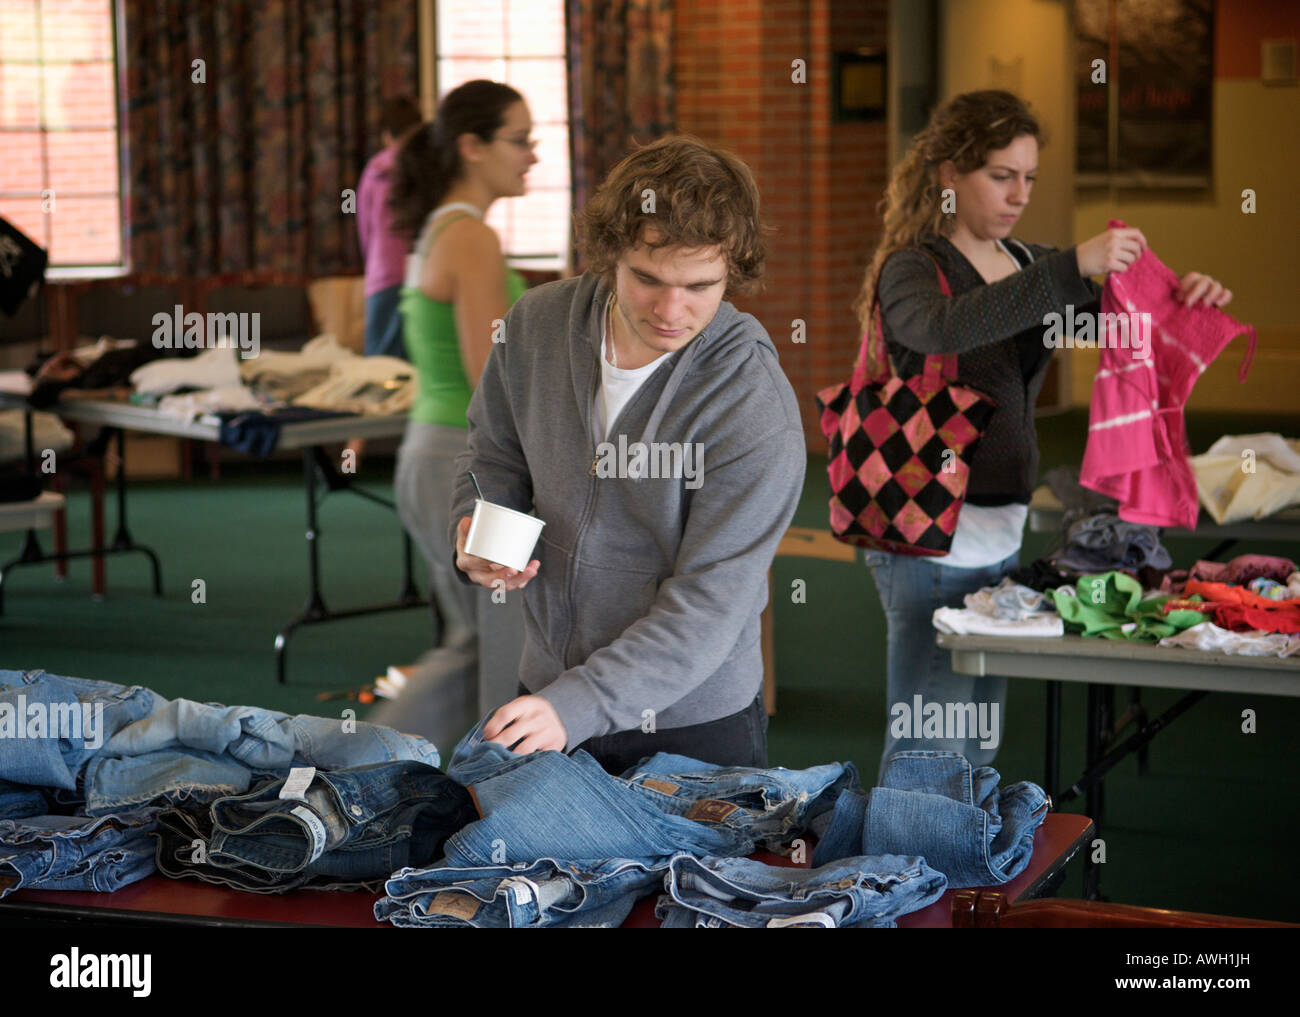 A young man inspects a pair of denim jeans at a clothing swap at the University of Puget Sound in Tacoma, WA, USA. - Stock Image